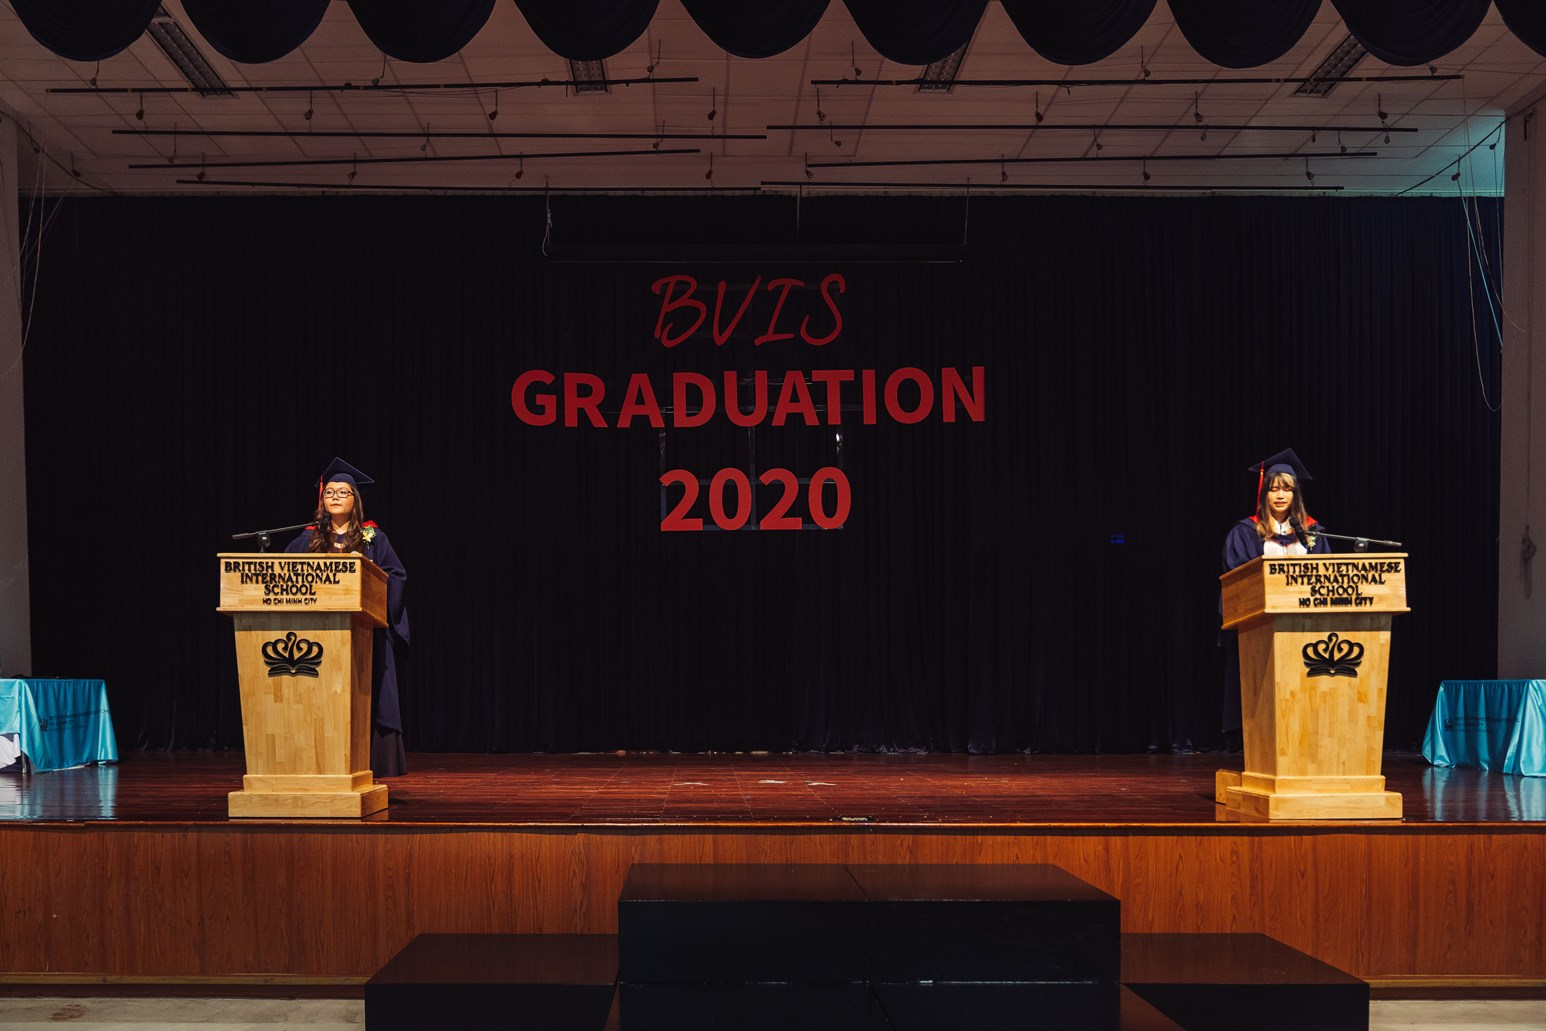 BVIS HCMC Graduation Ceremony 2020